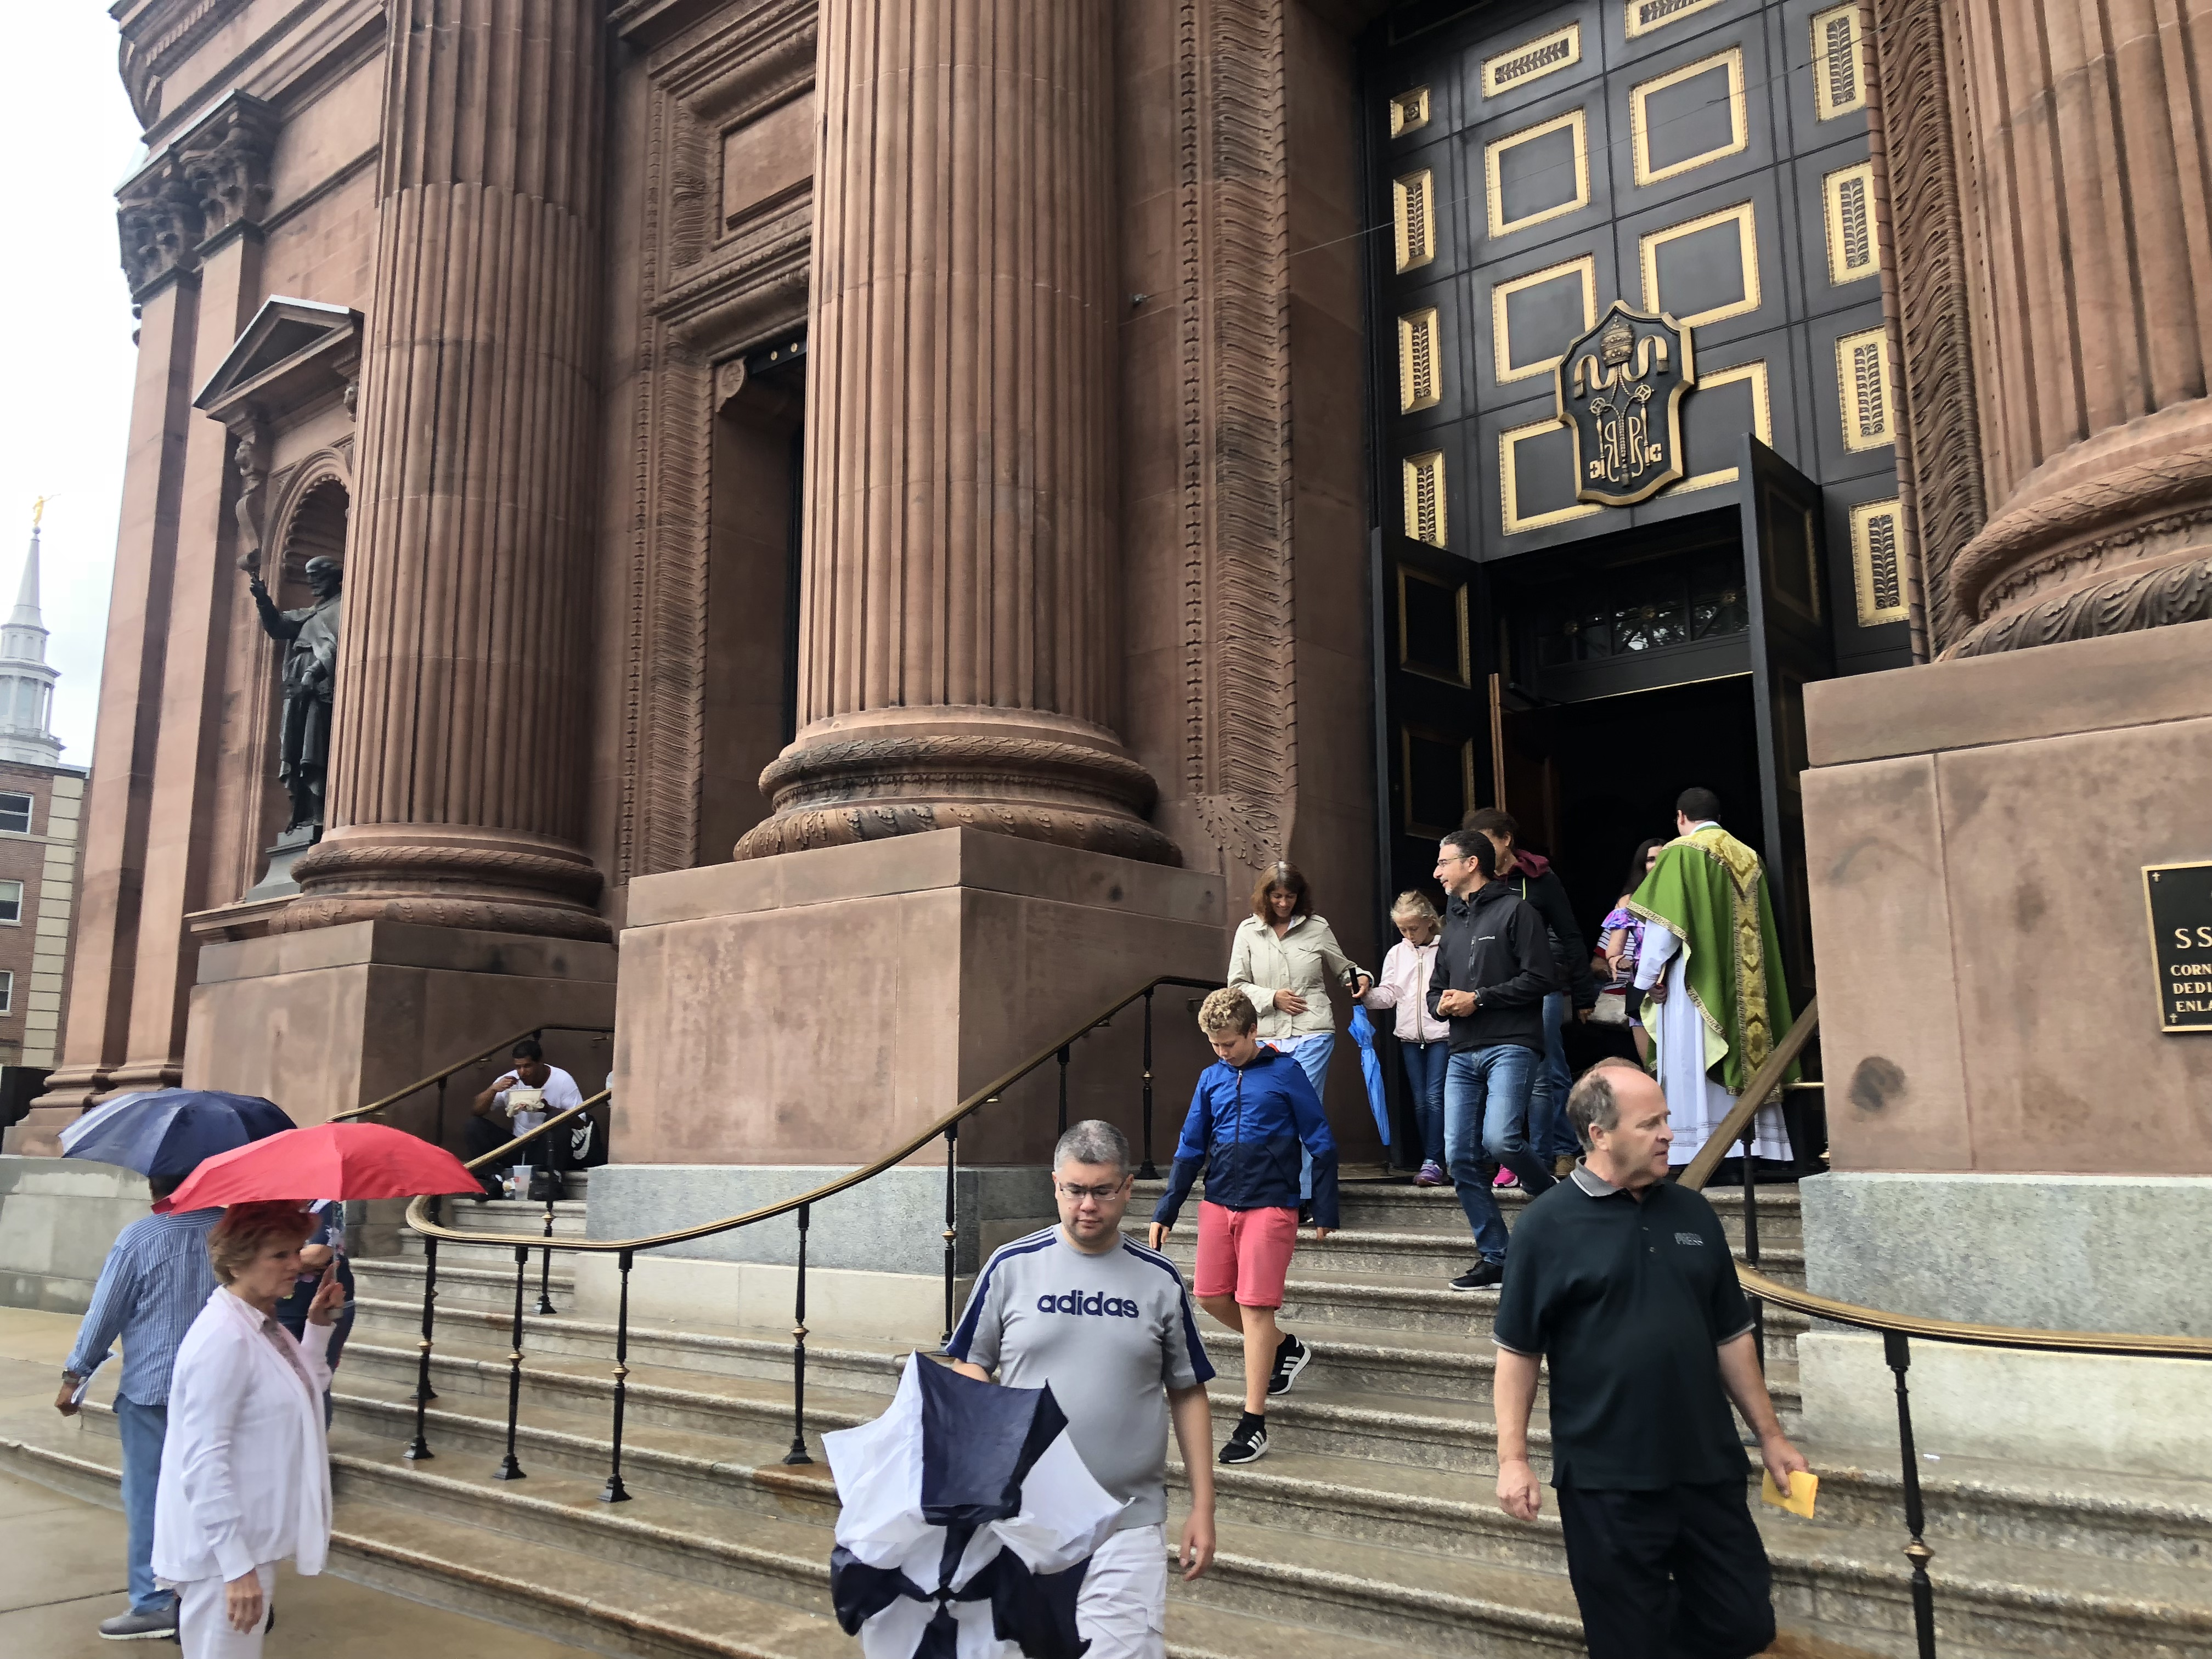 Churchgoers leave the Cathedral Basilica of Saints Peter and Paul after Sunday Mass.